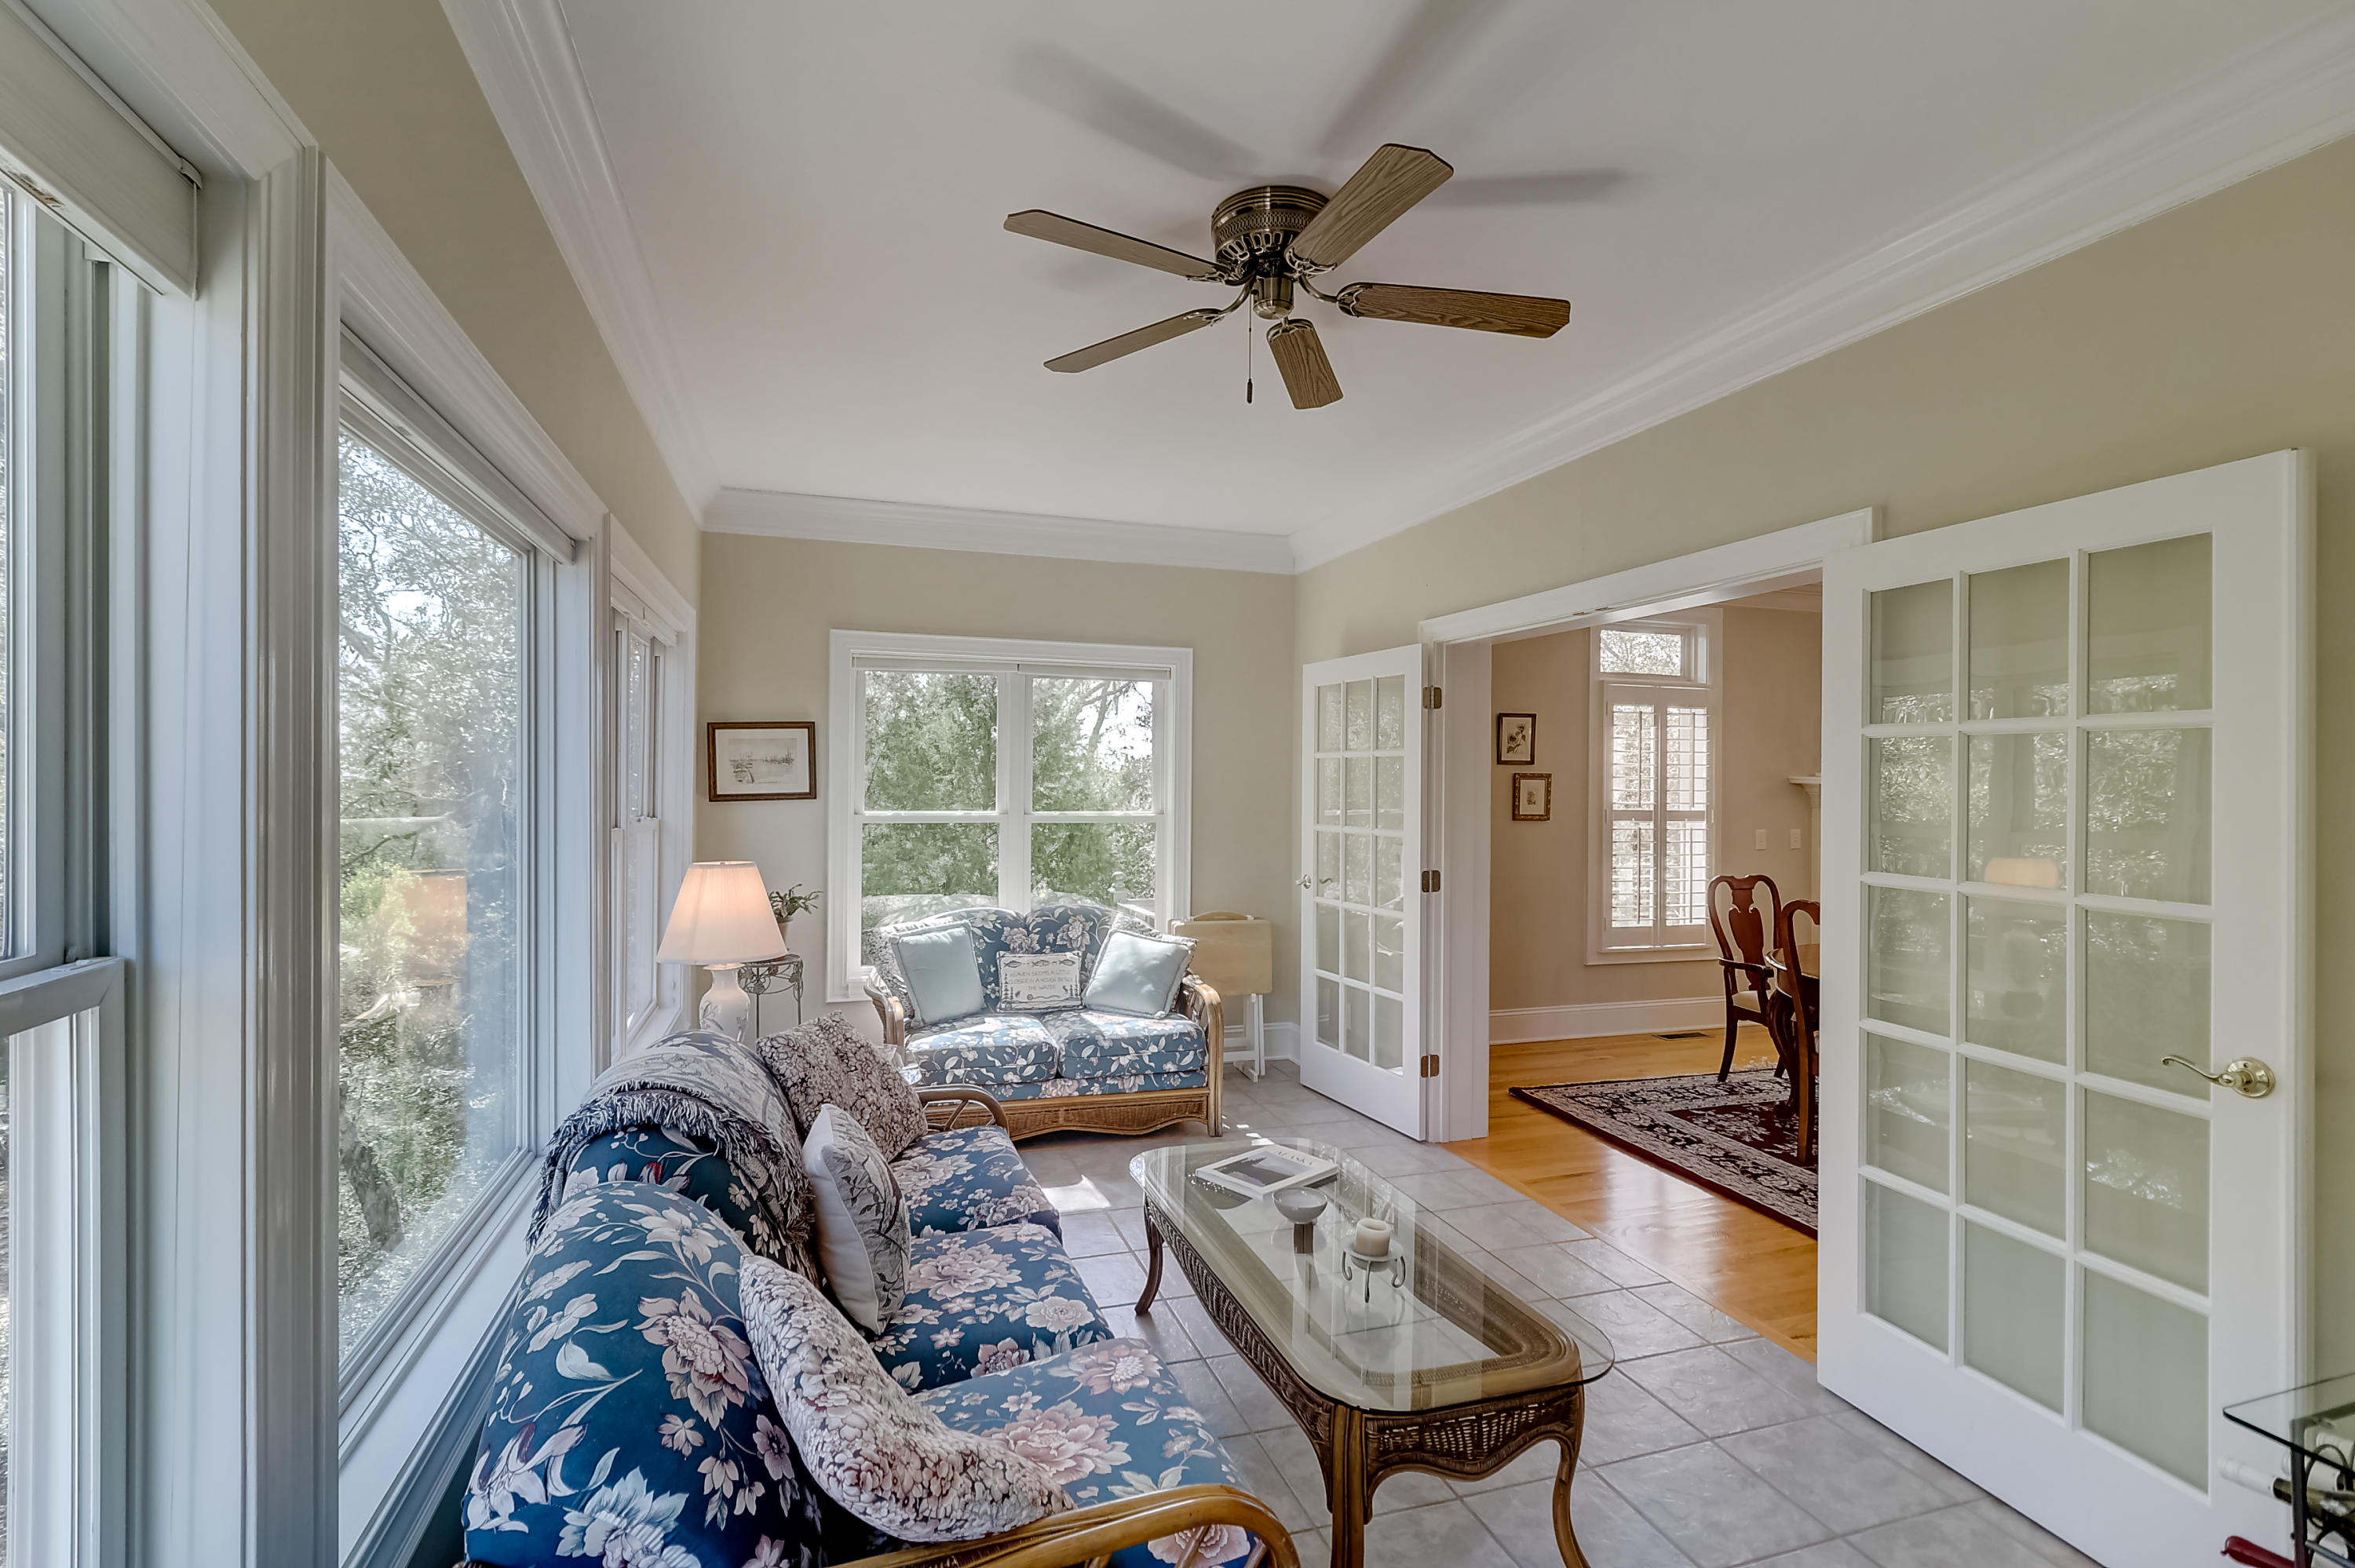 Stratton Place Homes For Sale - 1494 Stratton, Mount Pleasant, SC - 51